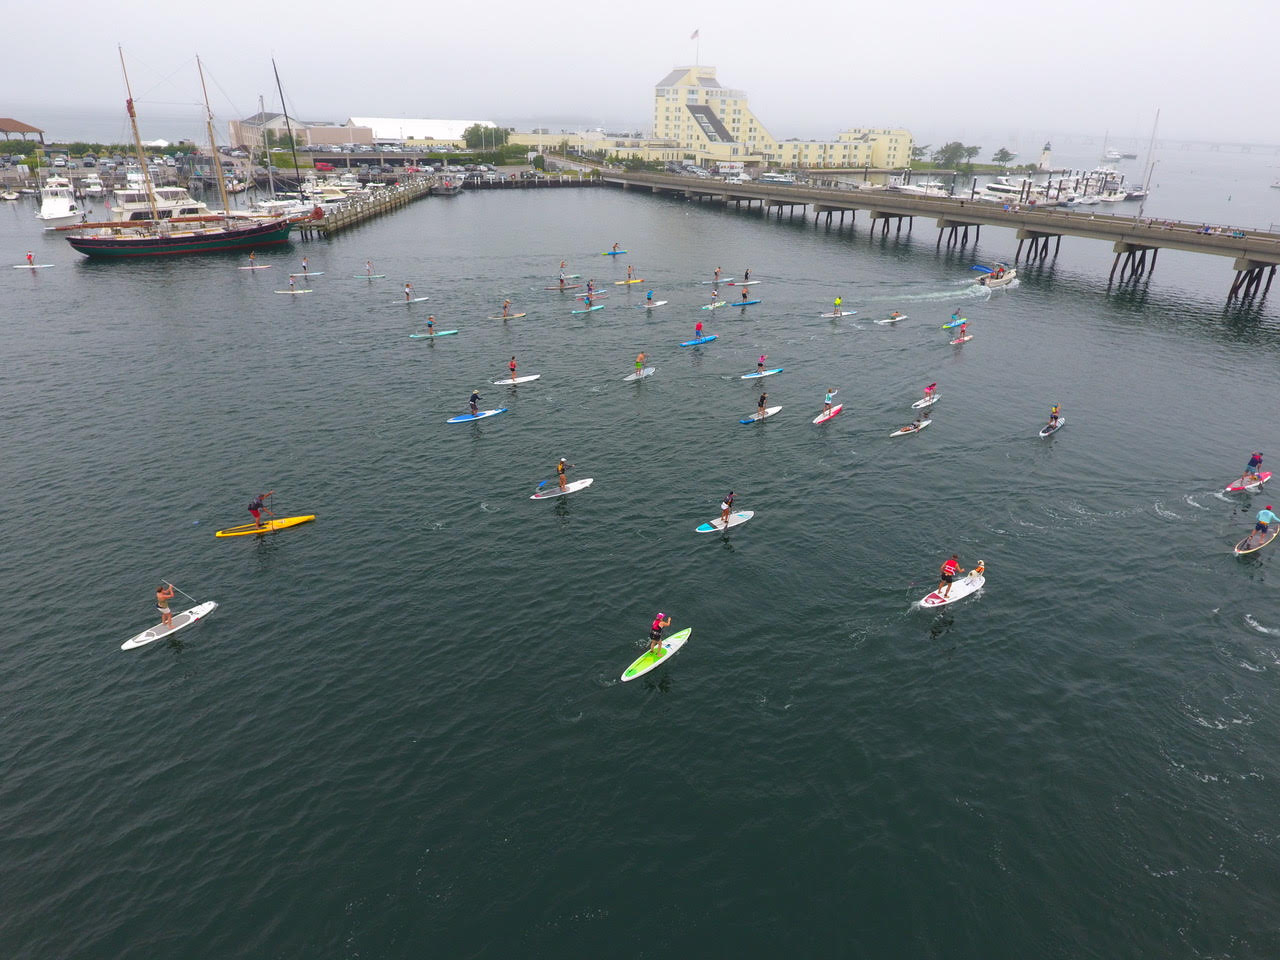 Eighty-six paddlers enjoyed the 2nd Annual Paddle for Access to bring awareness and raise over $8K for Clean Ocean Access